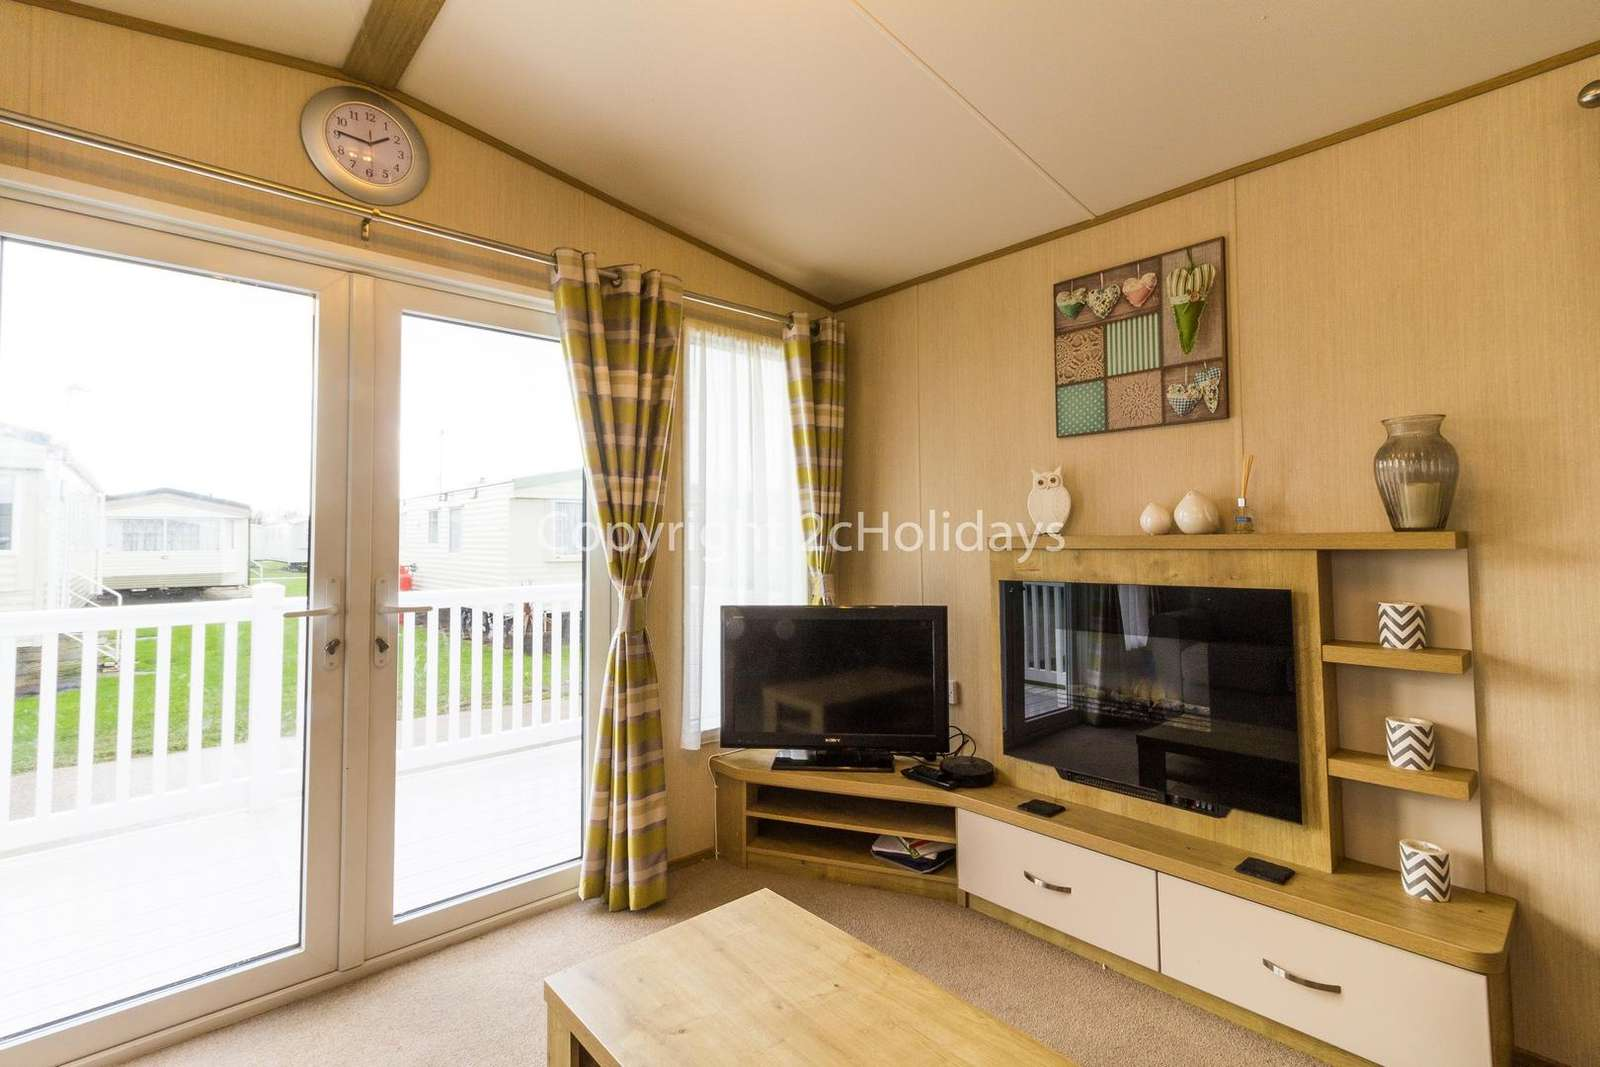 You can relax with your family or friends in this living ares with a TV and electric fire